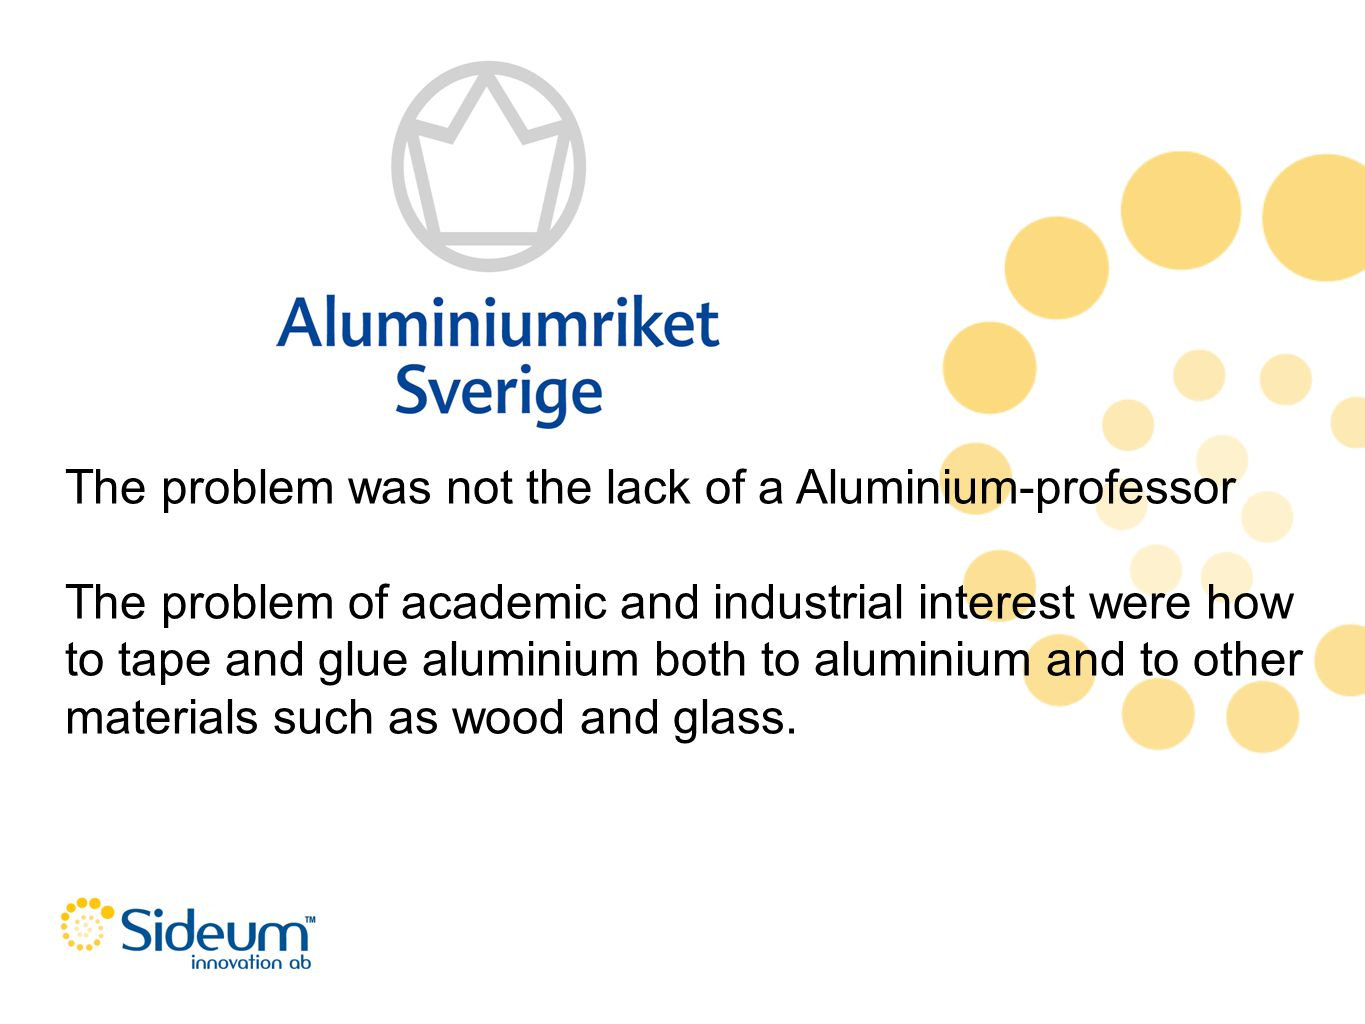 The problem was not the lack of a Aluminium-professor